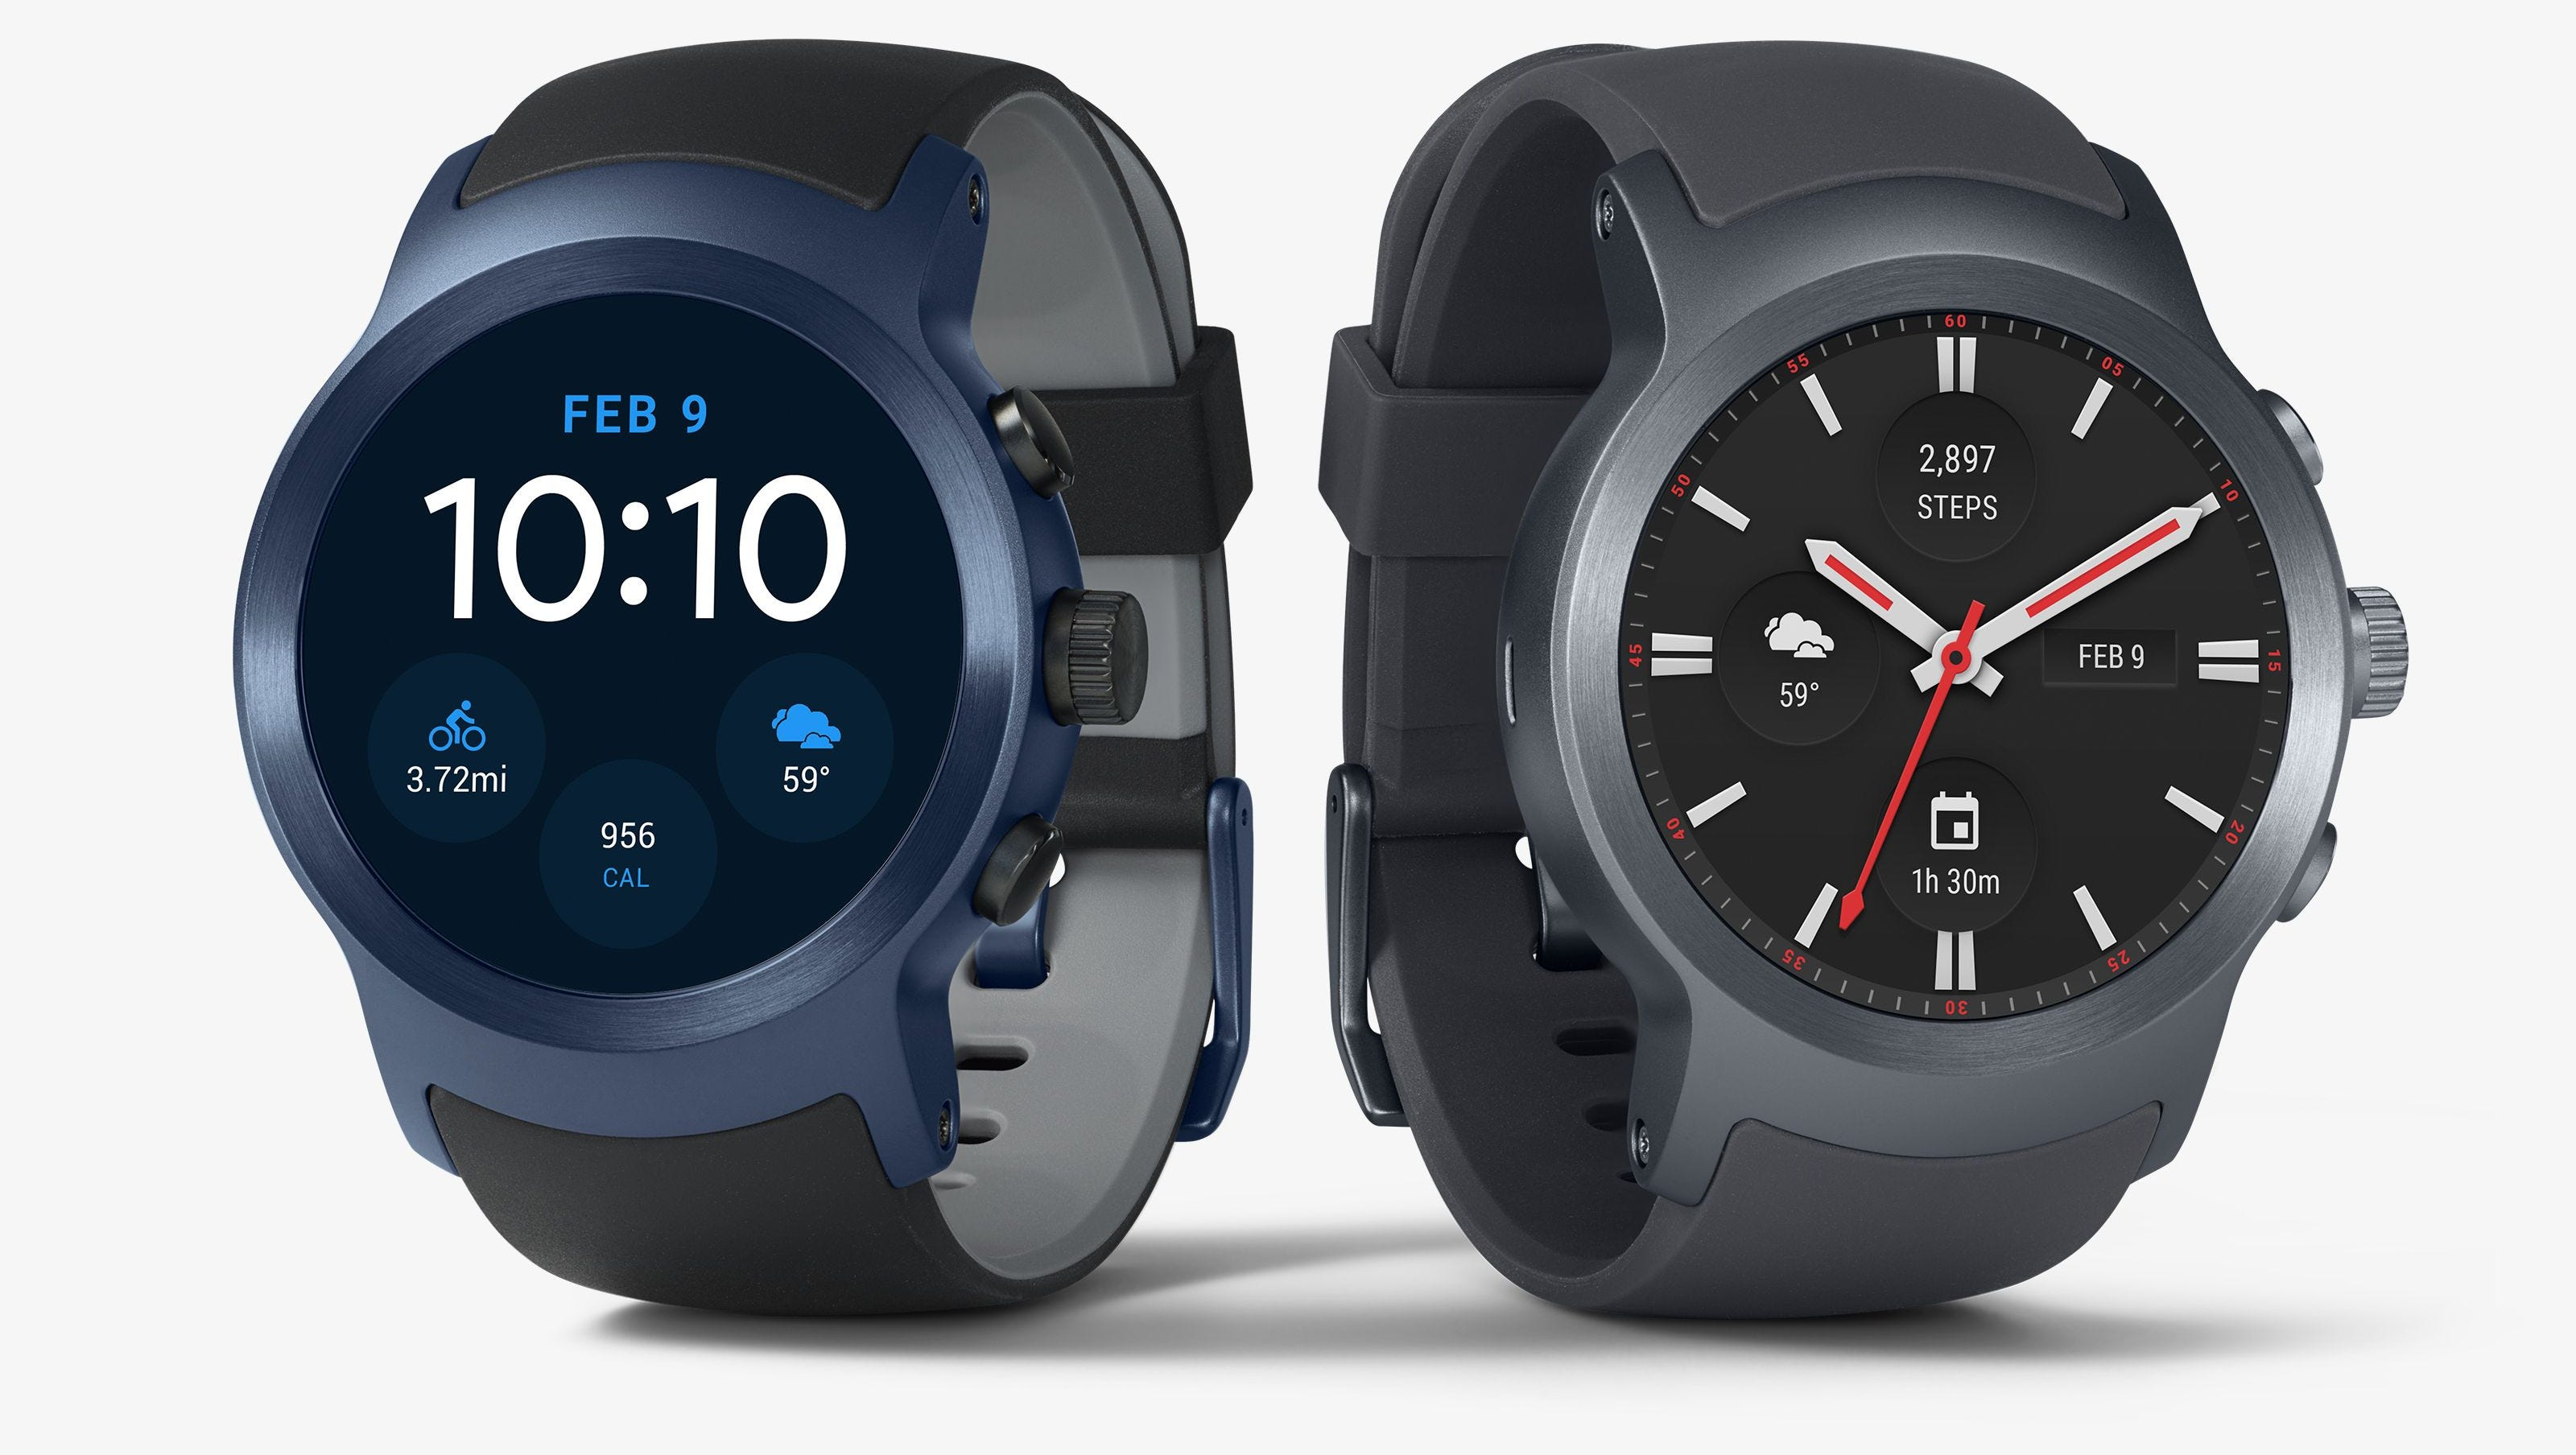 Android Wear android wear 2.0 clocks in with smarter smartwatches